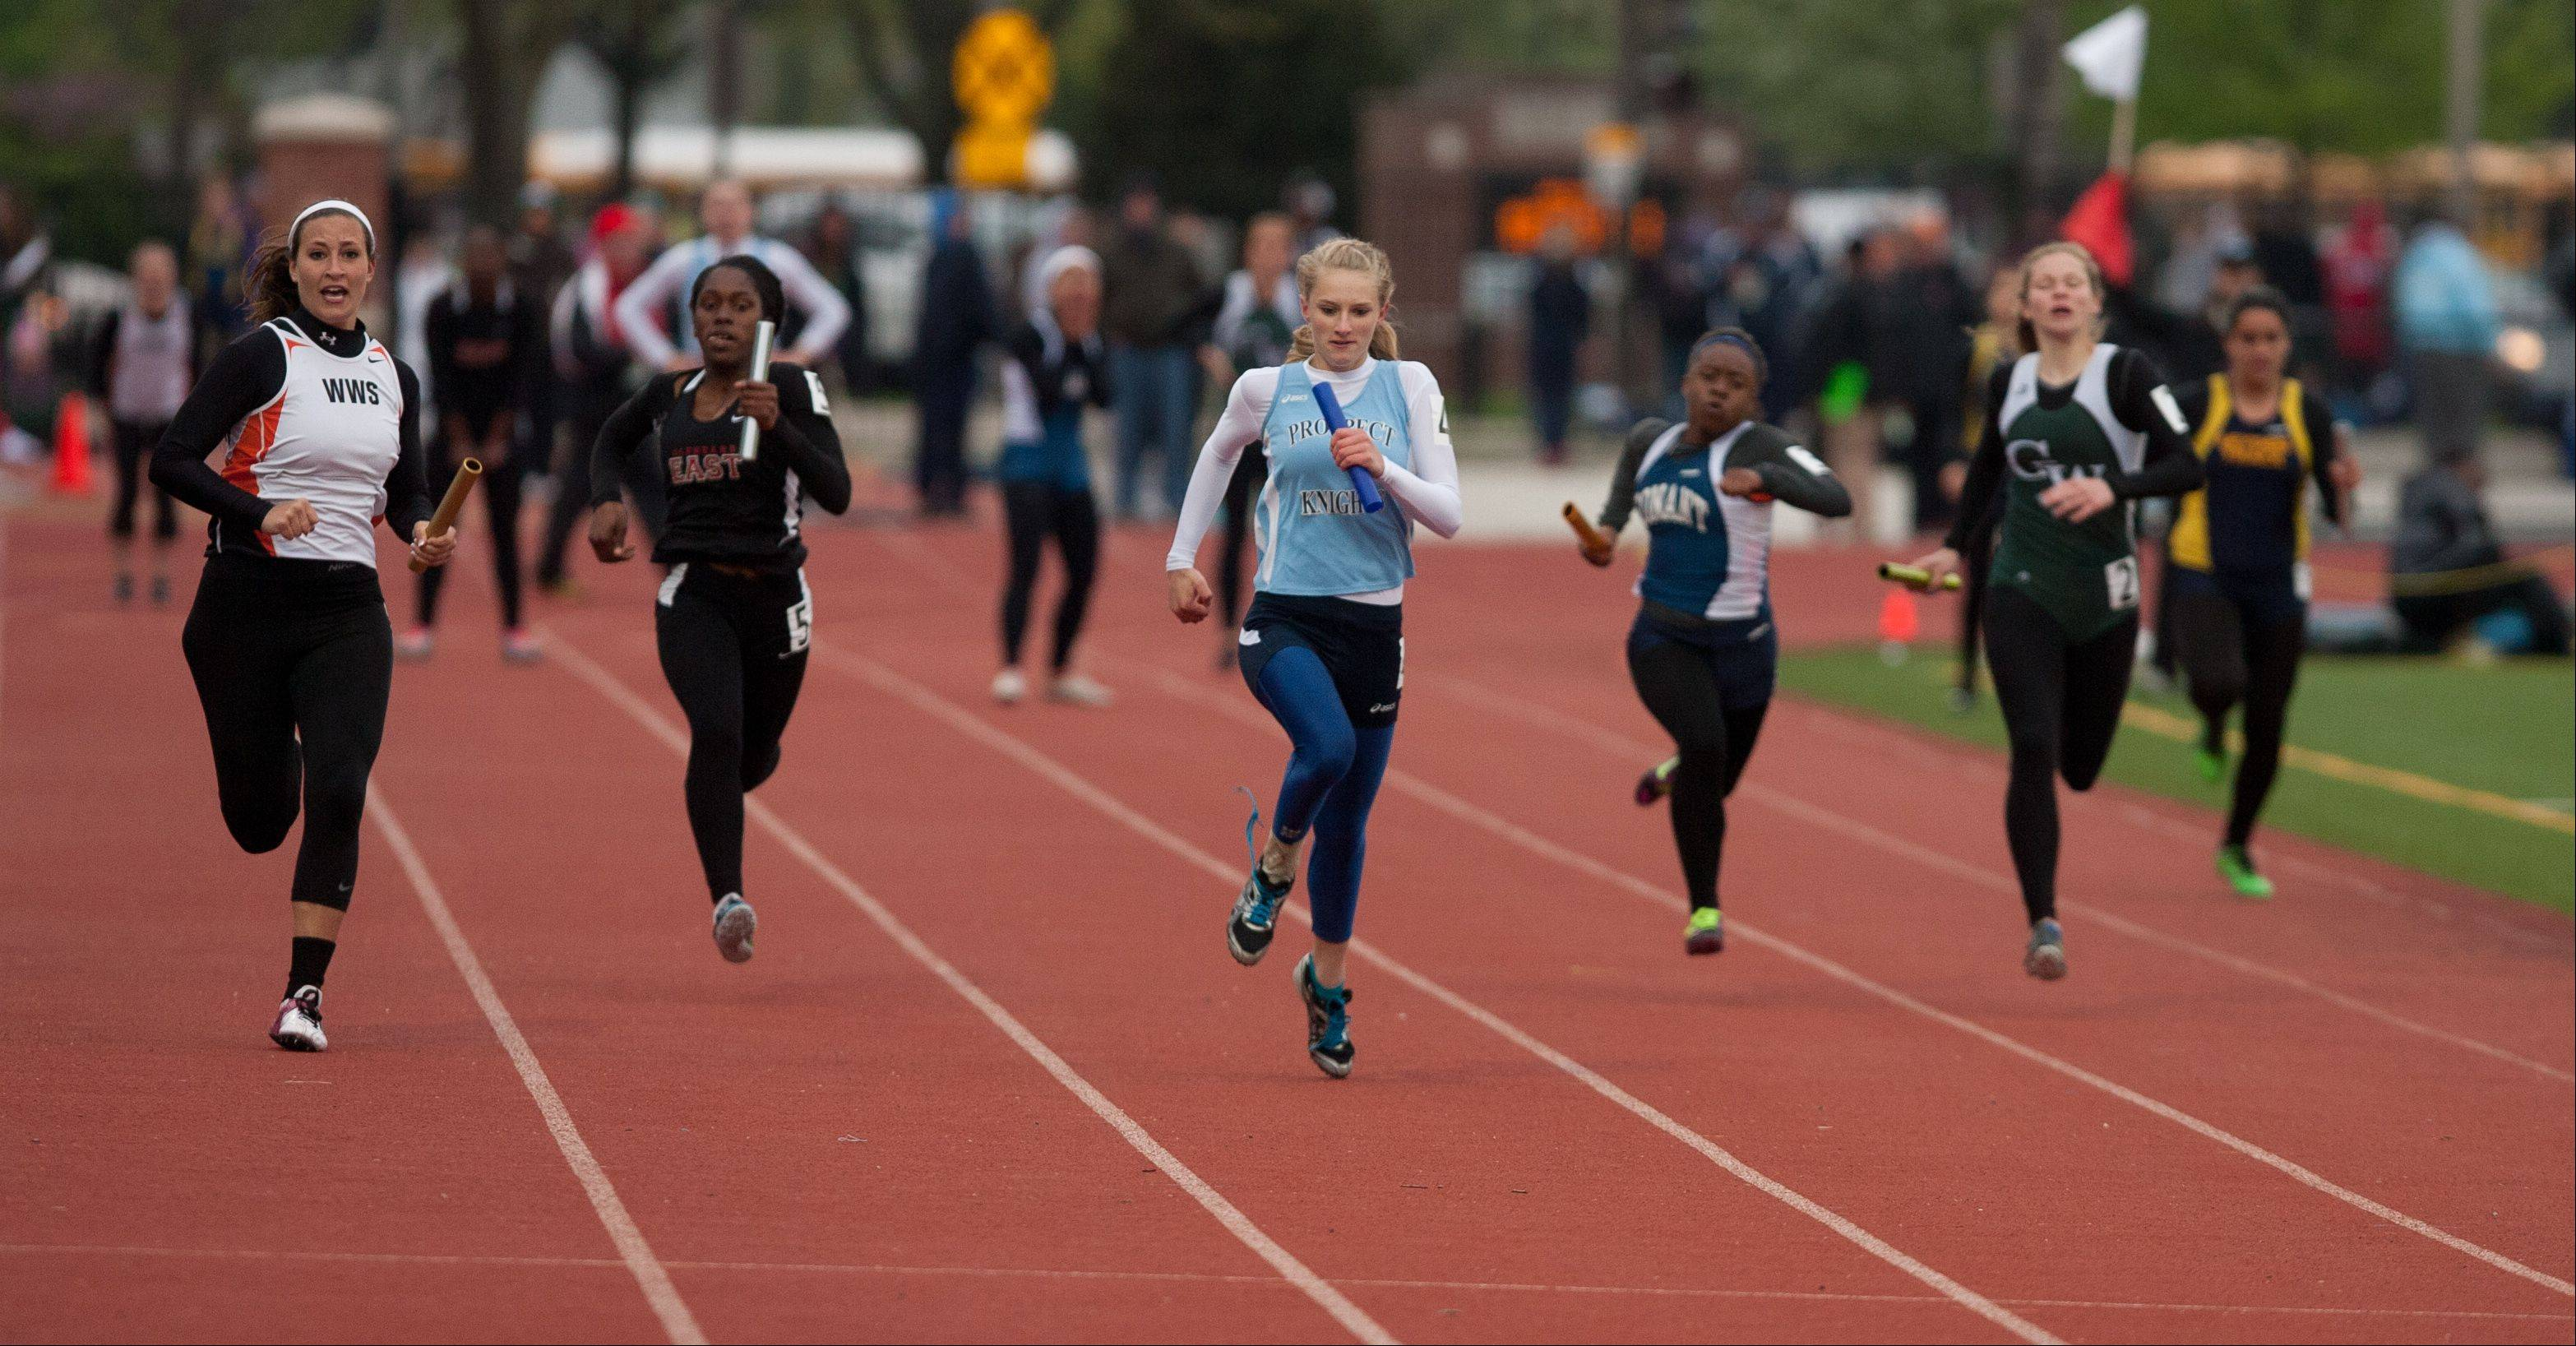 Prospect's Jessica Skudlarek anchors a 4 x 100 Meter Relay win during the York Girls Track and Field Sectional meet.